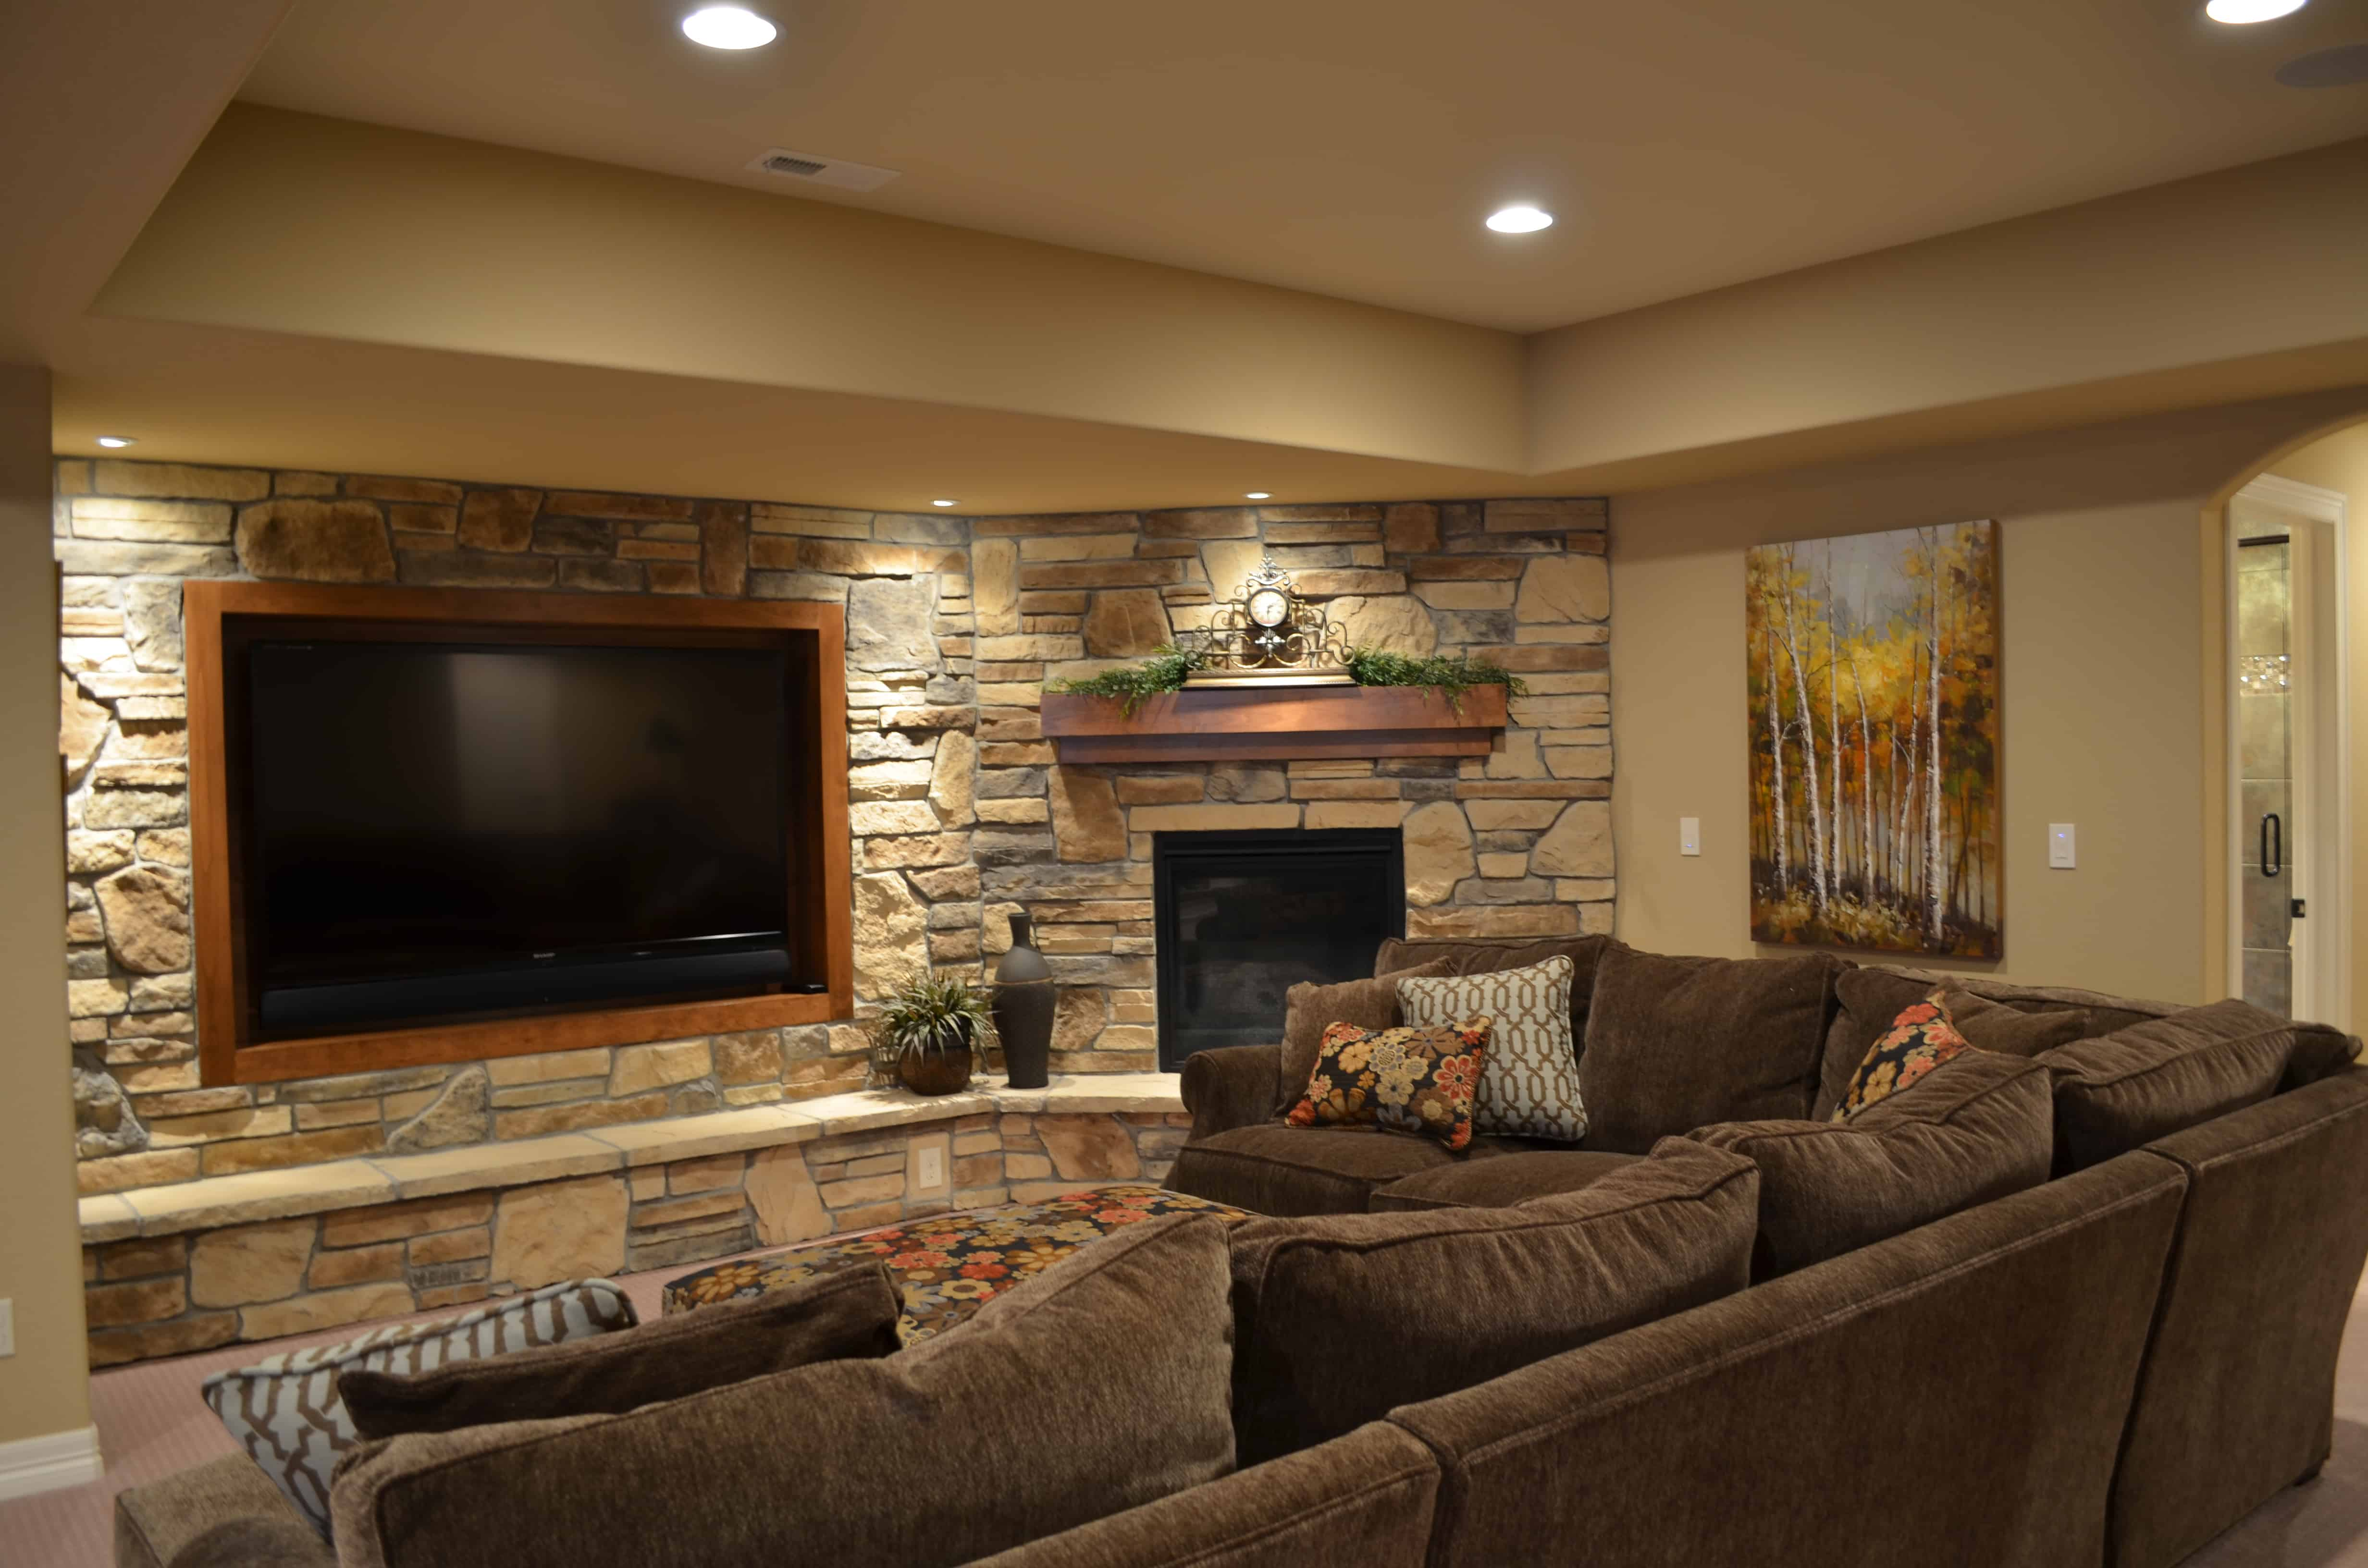 How To Start Basement Remodel